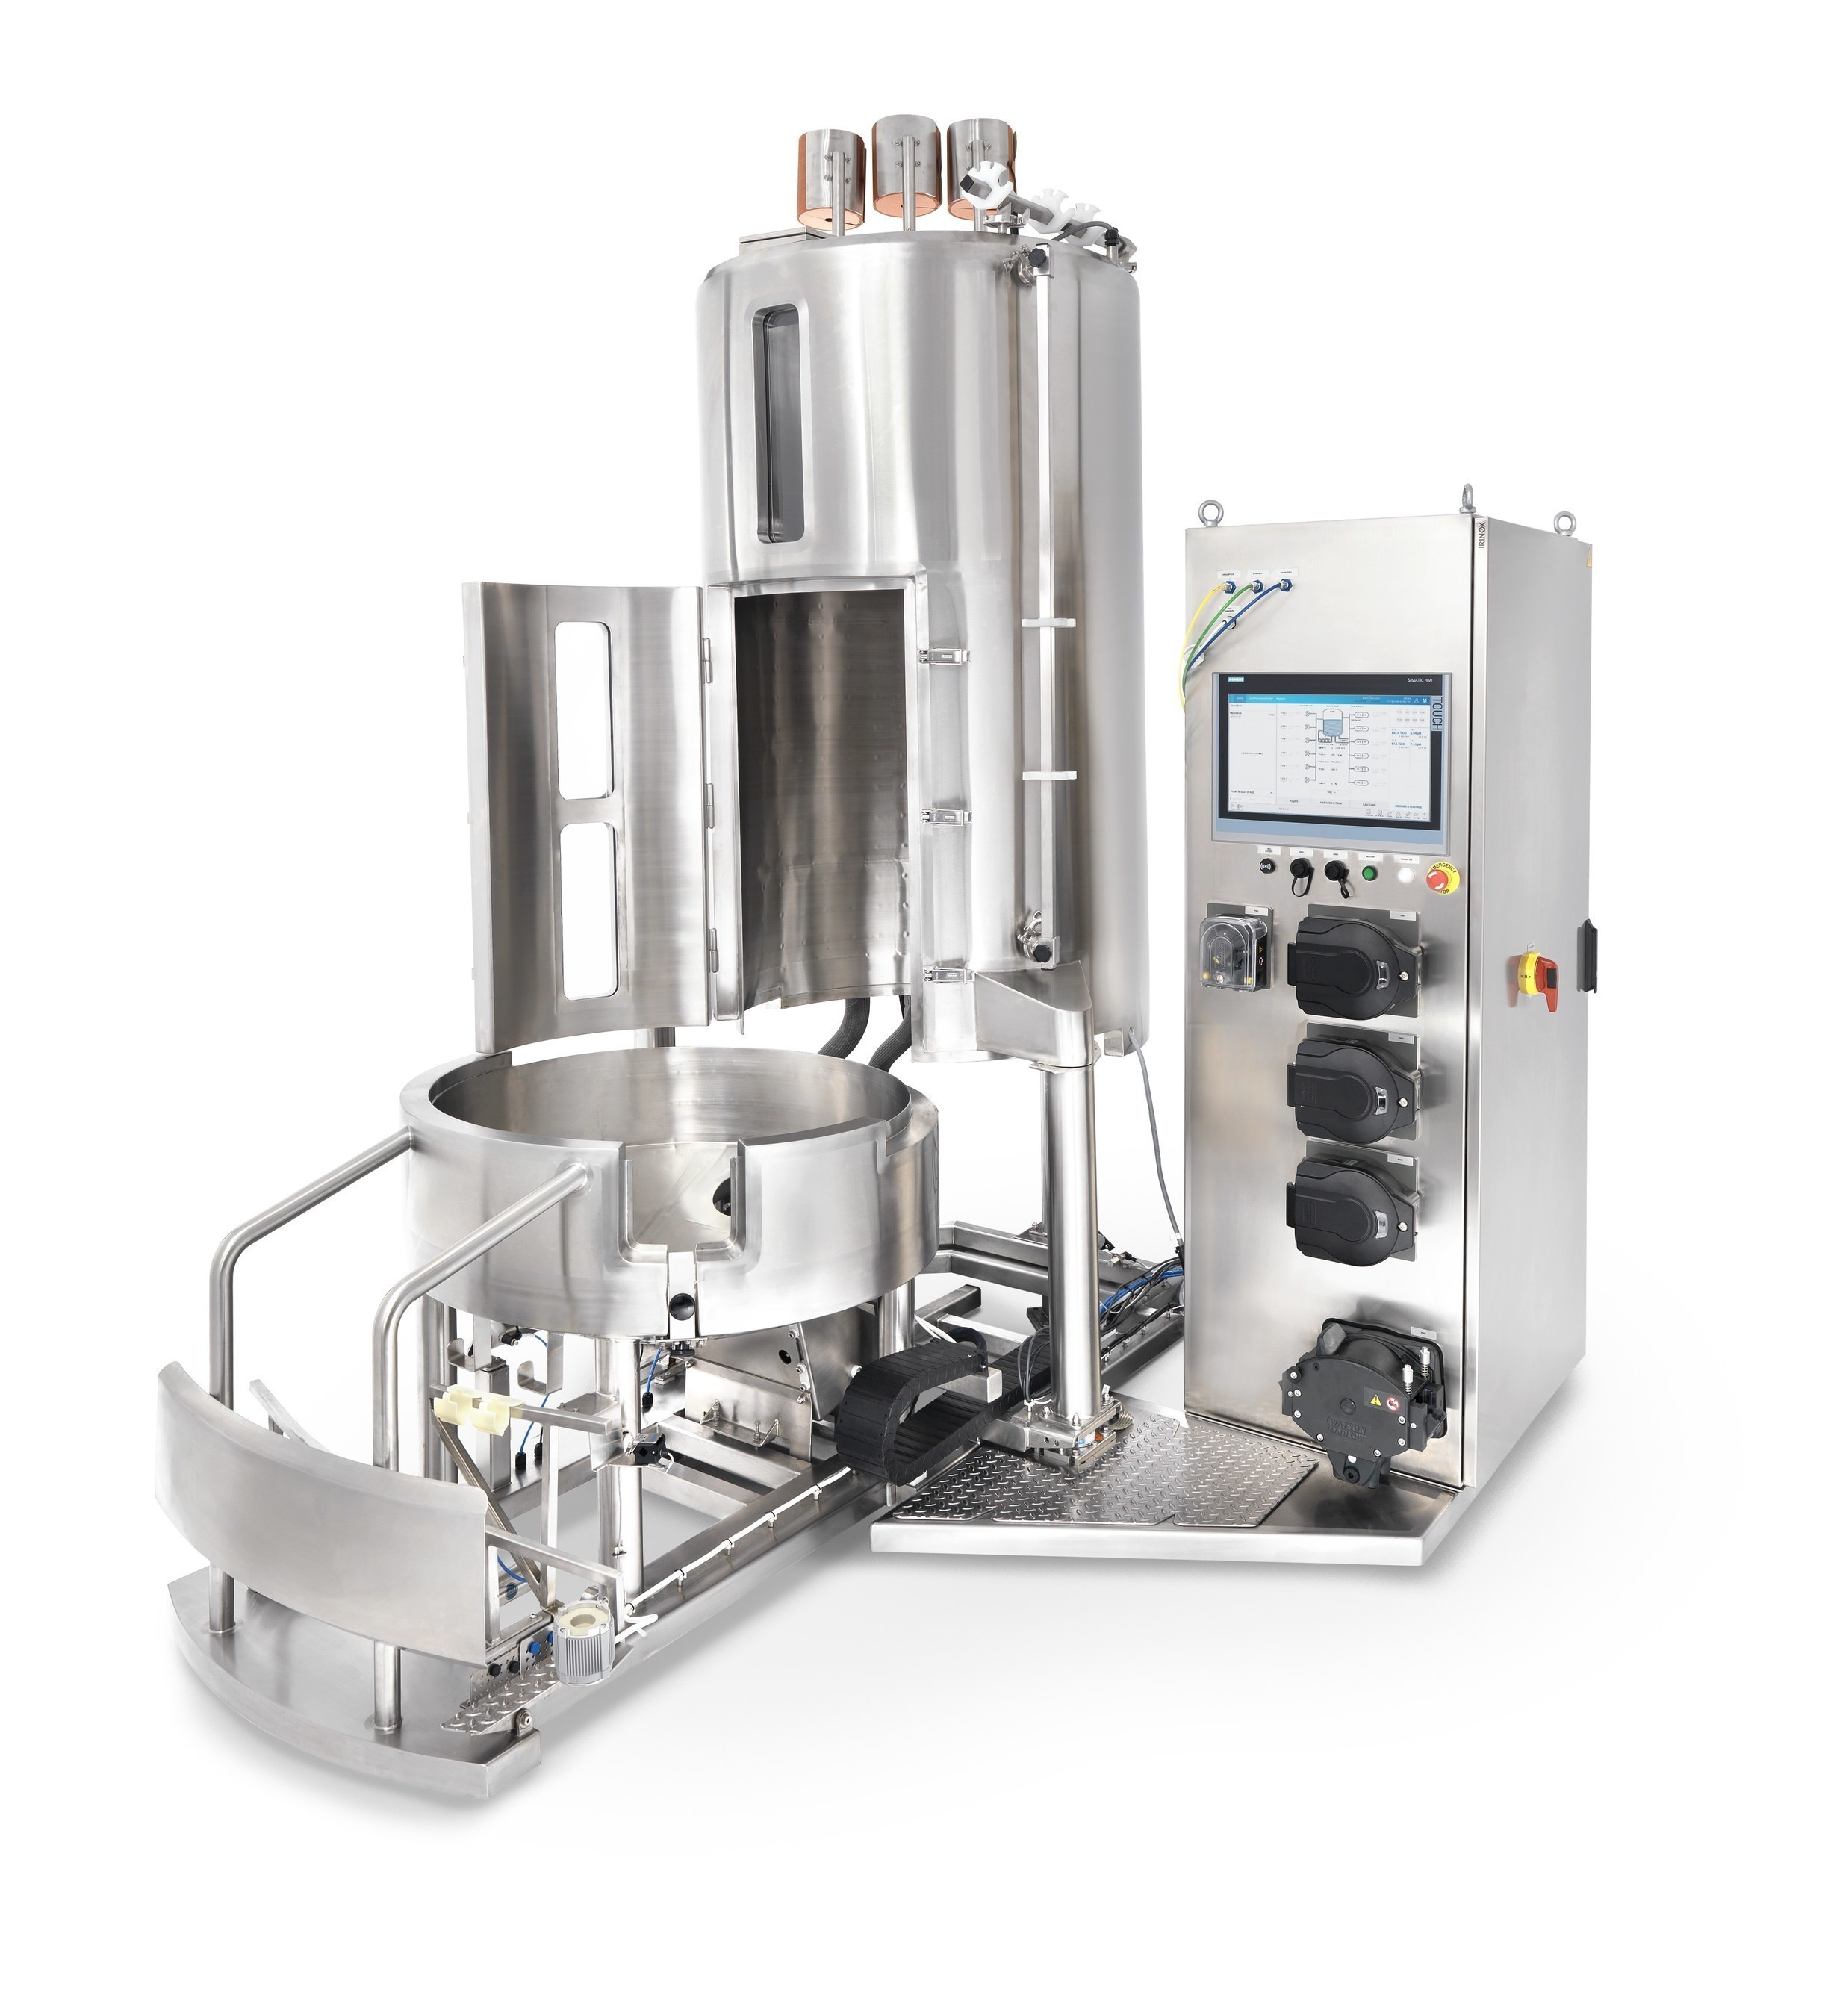 The Mobius(R) 1000 liter single-use bioreactor completes the comprehensive Mobius(R) stirred tank portfolio of 3 to 2000 liter sizes, delivering greater flexibility and continuity for scale-up